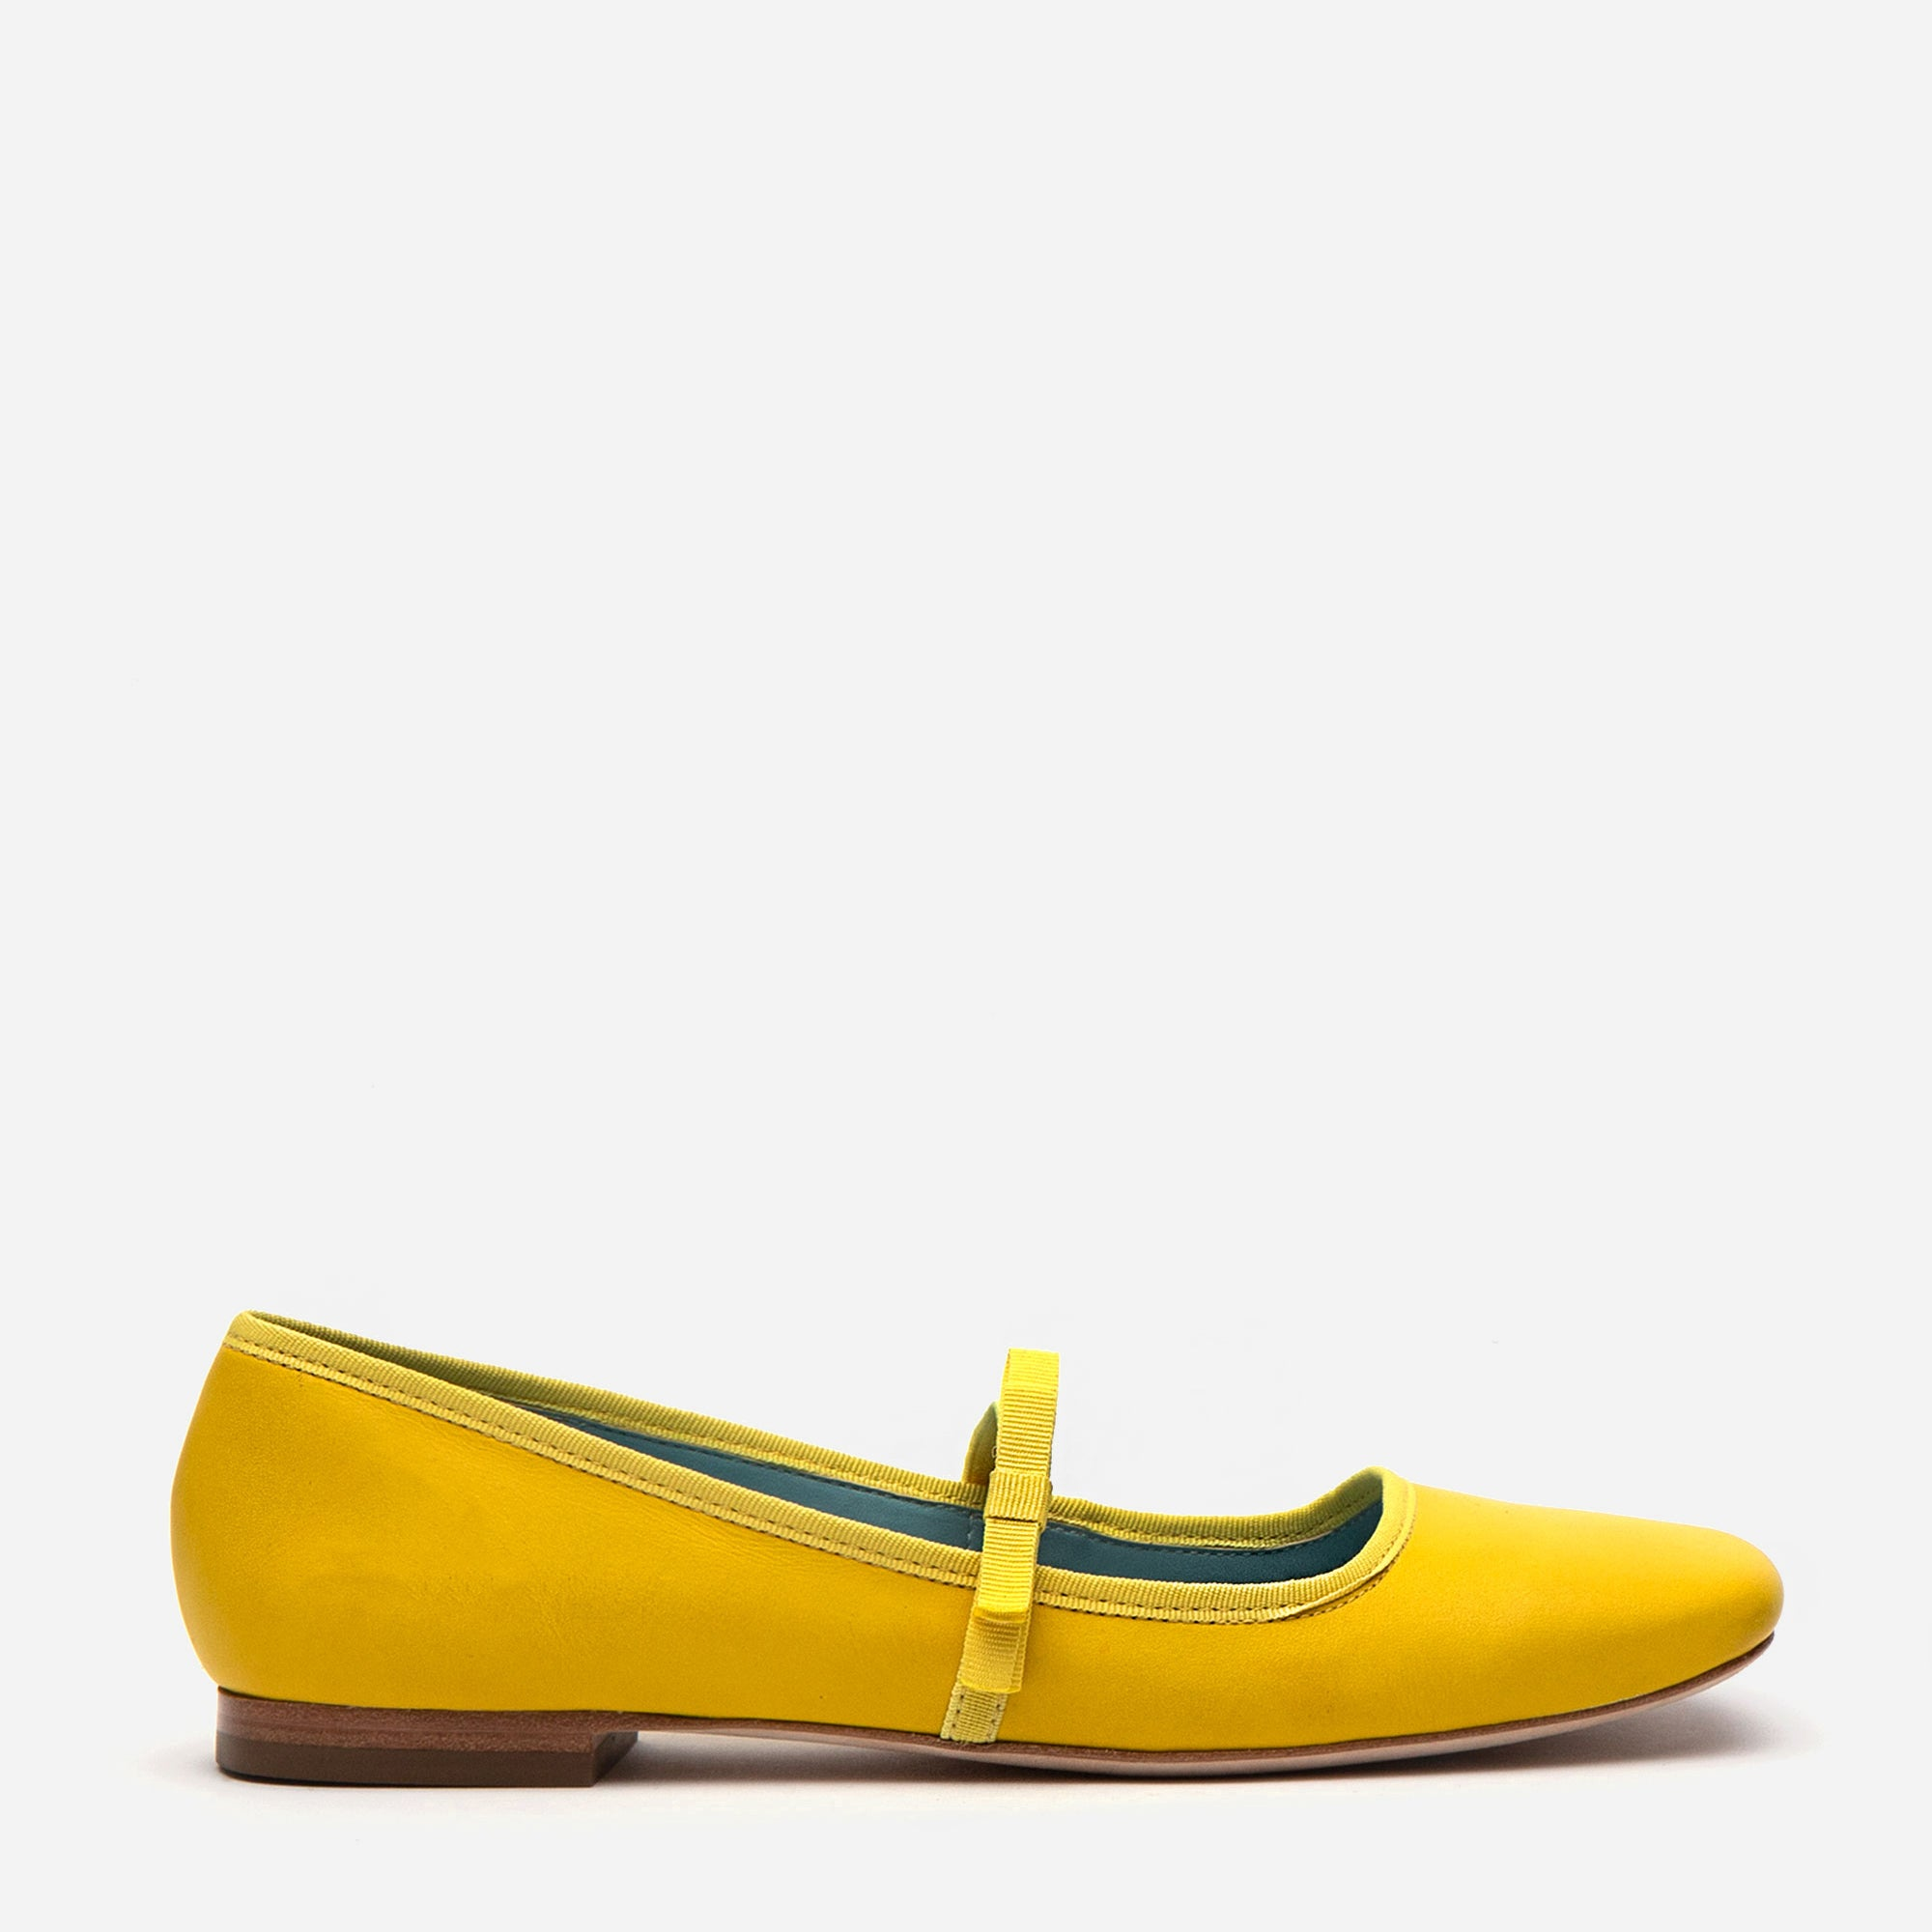 Jude Mary Jane Leather Flat Canary